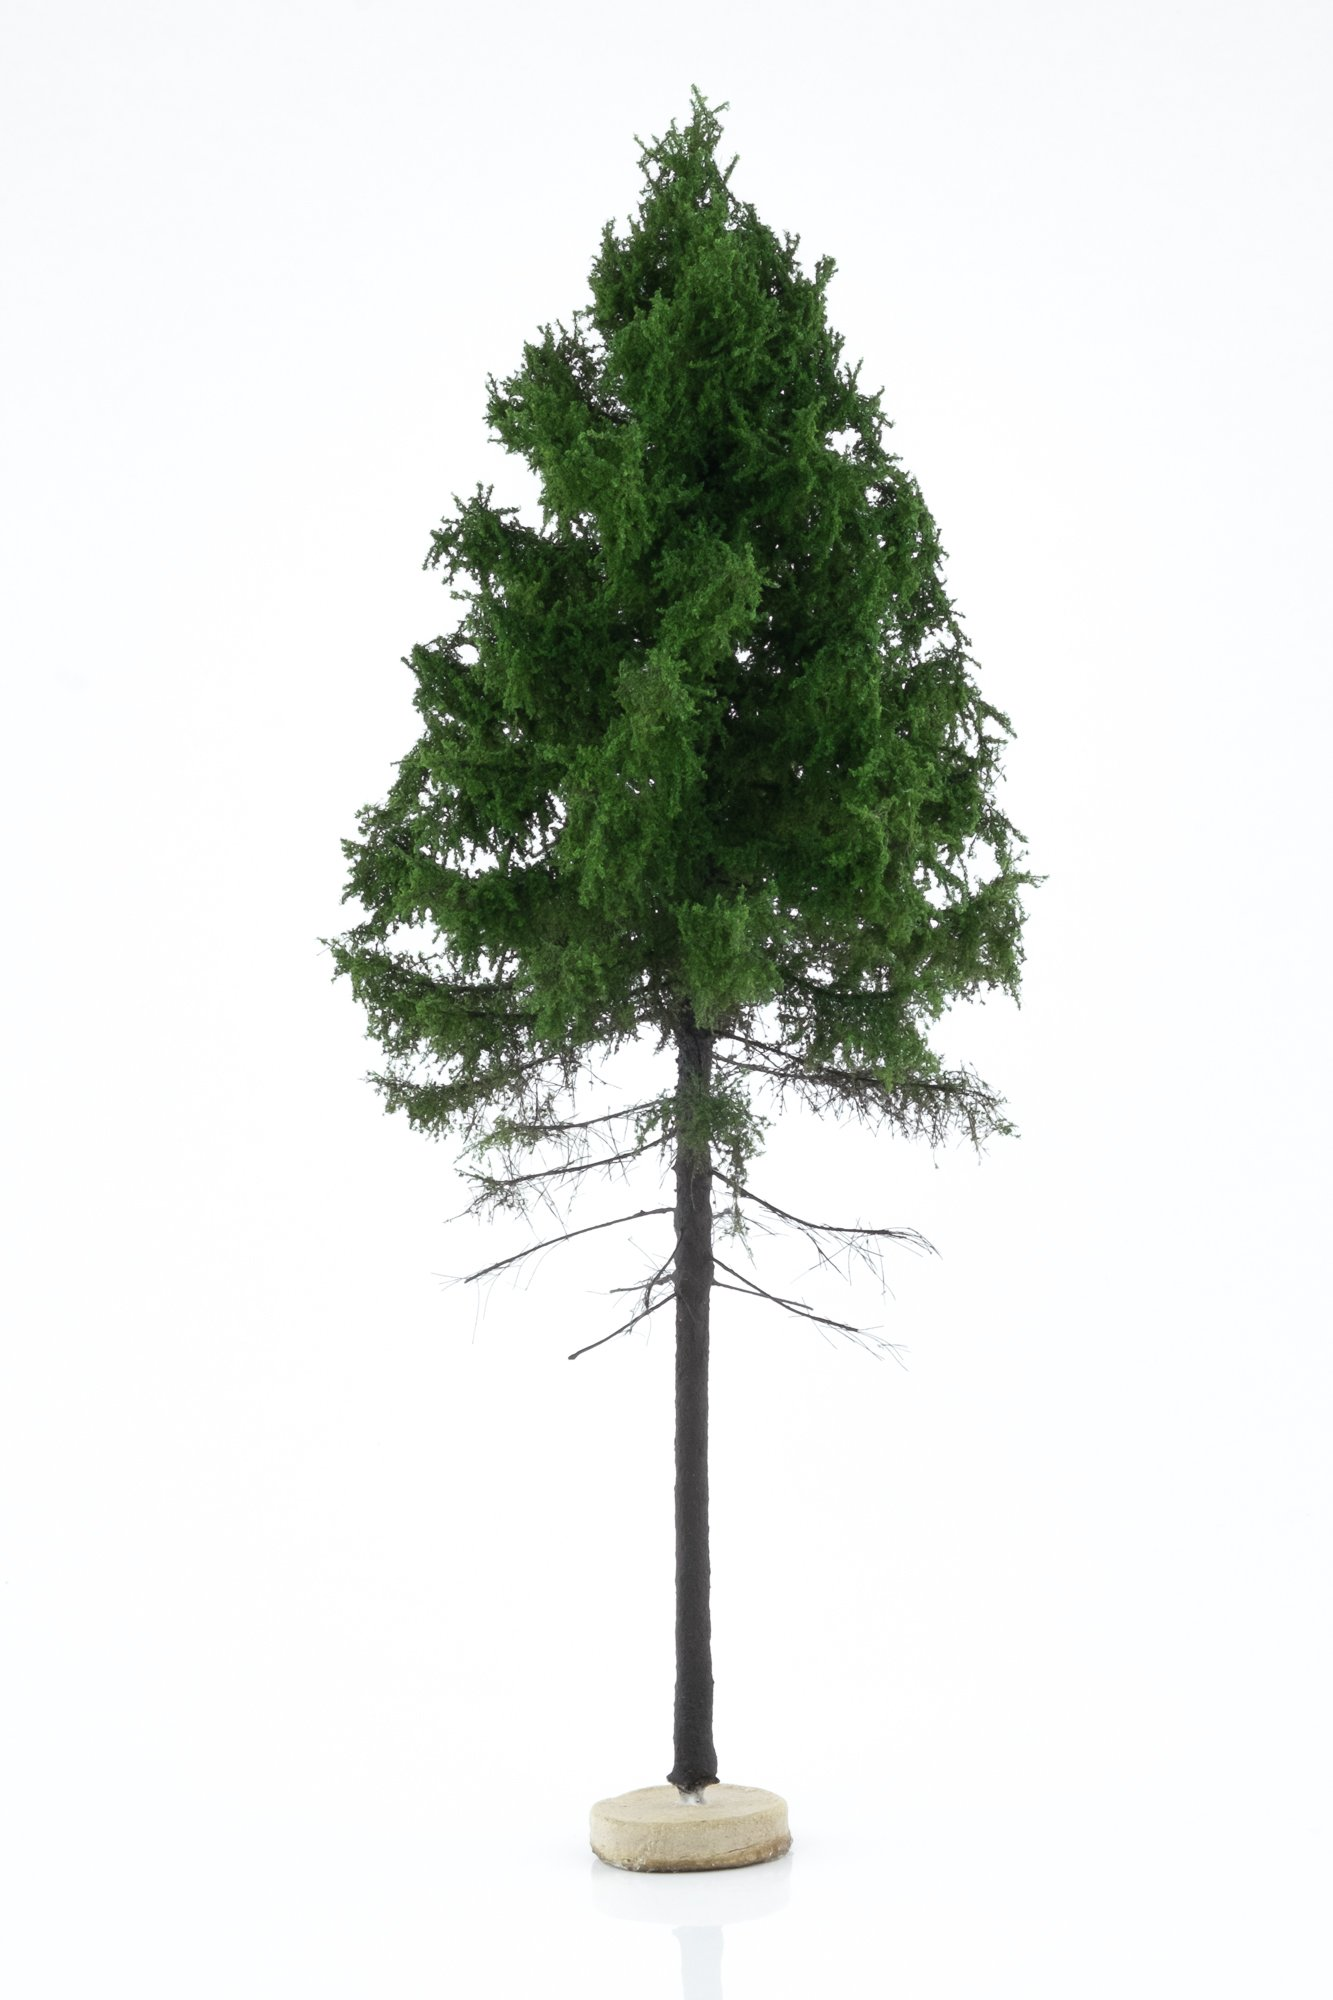 Hand-made, green, forest larch tree model. Size between 26 and 28 cm. Made from high quality model supplies by Primo Models.